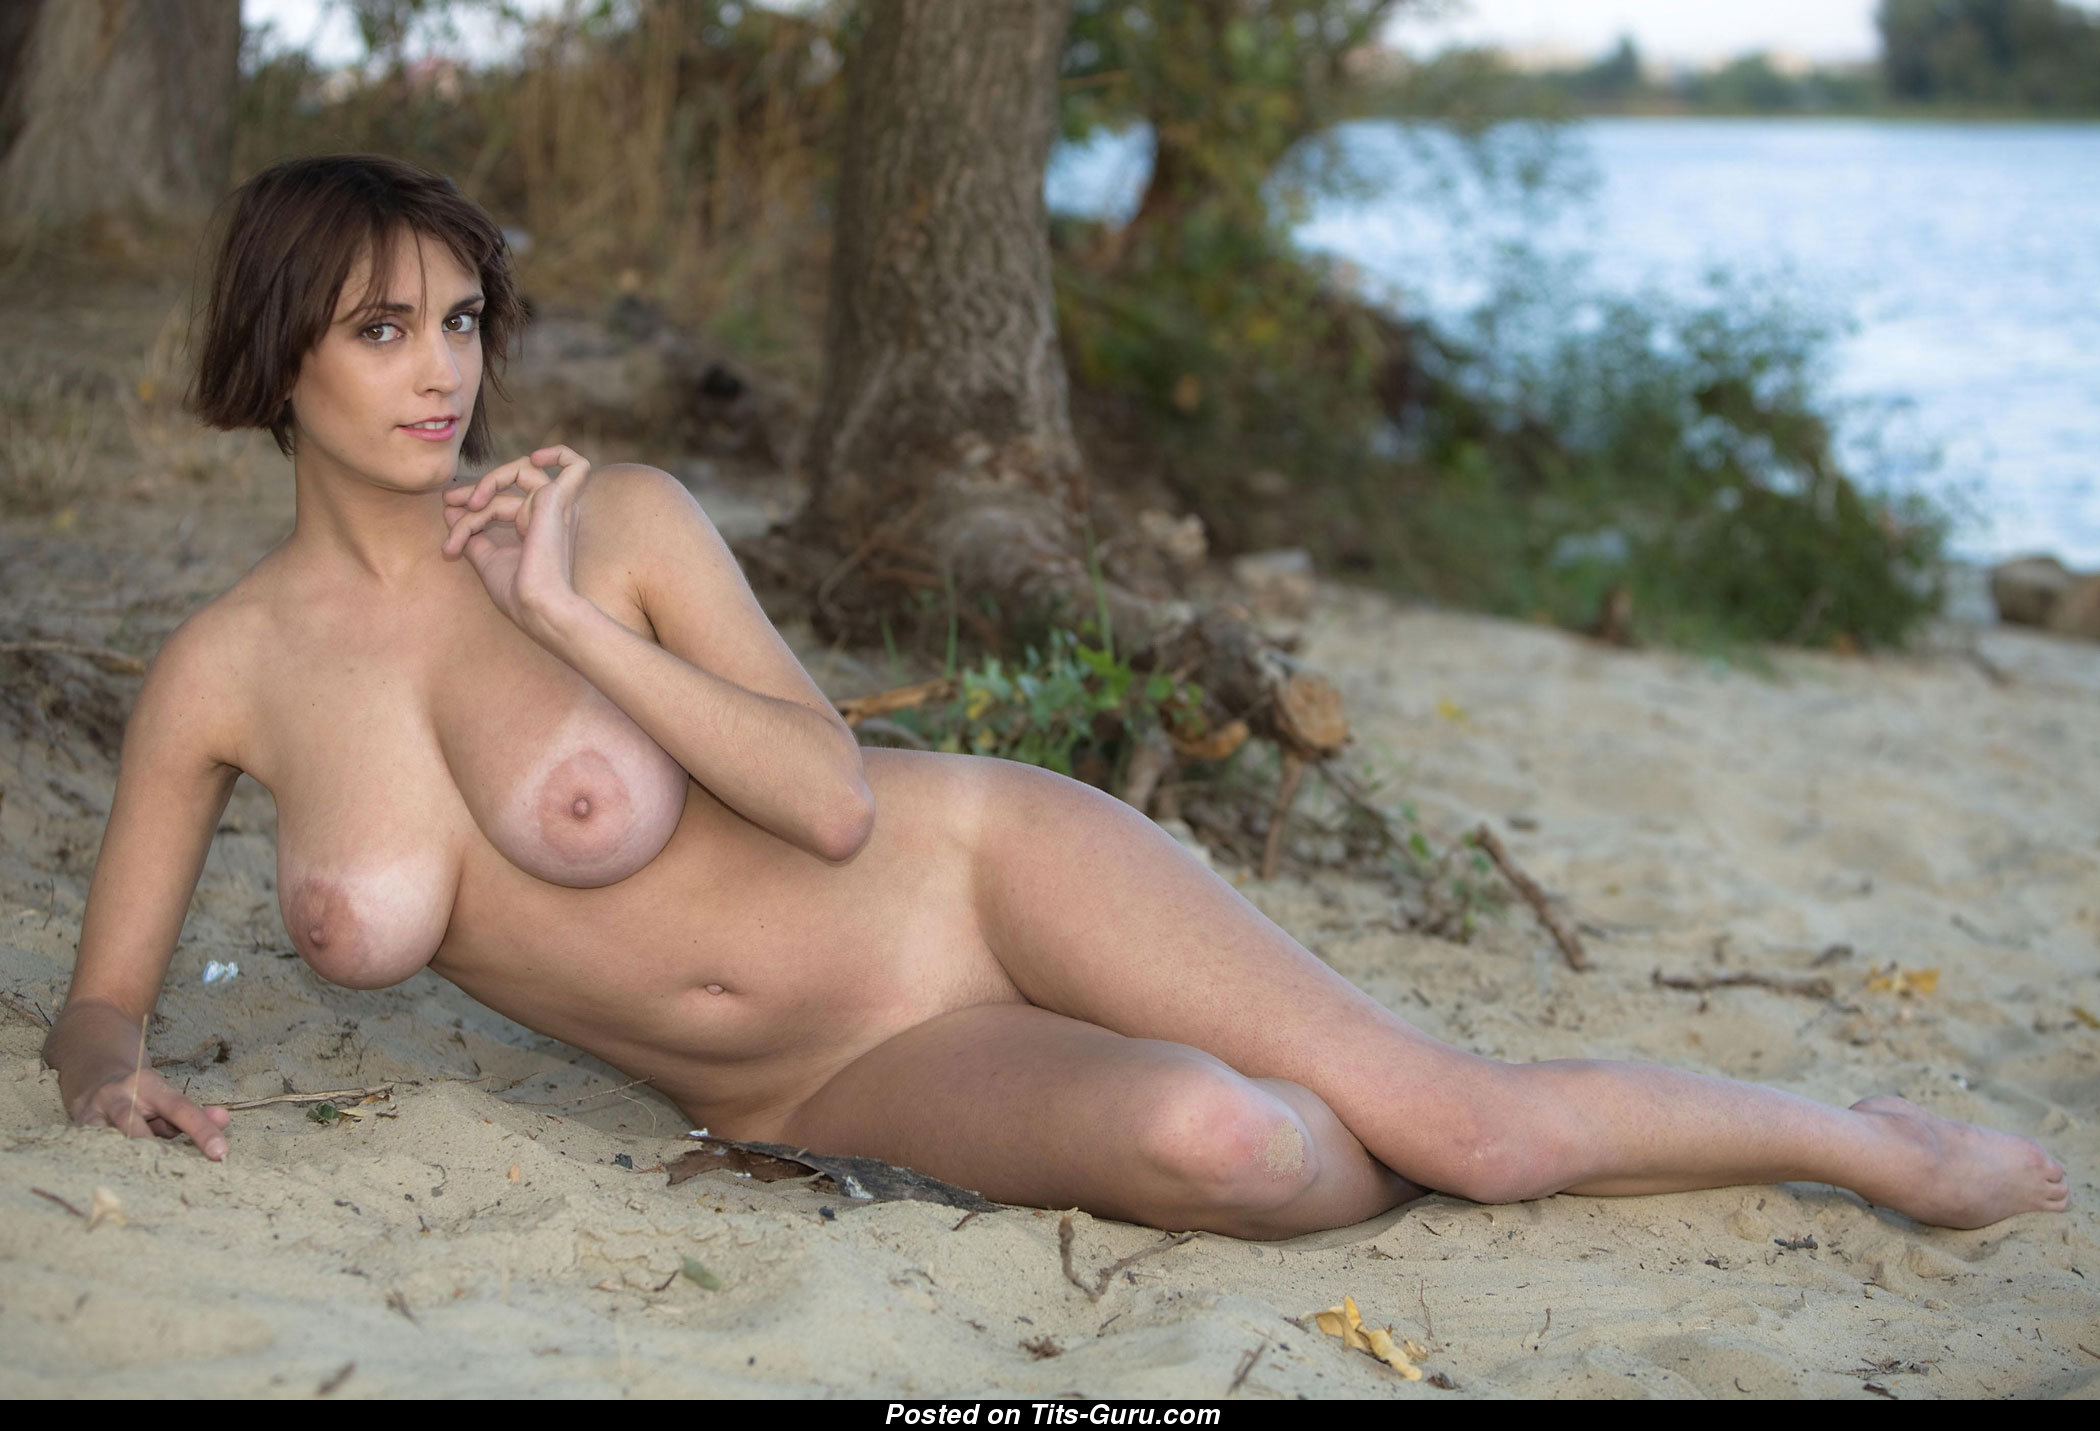 Nude Awesome Girl With Big Natural Boobs Image 1434696144548-6432